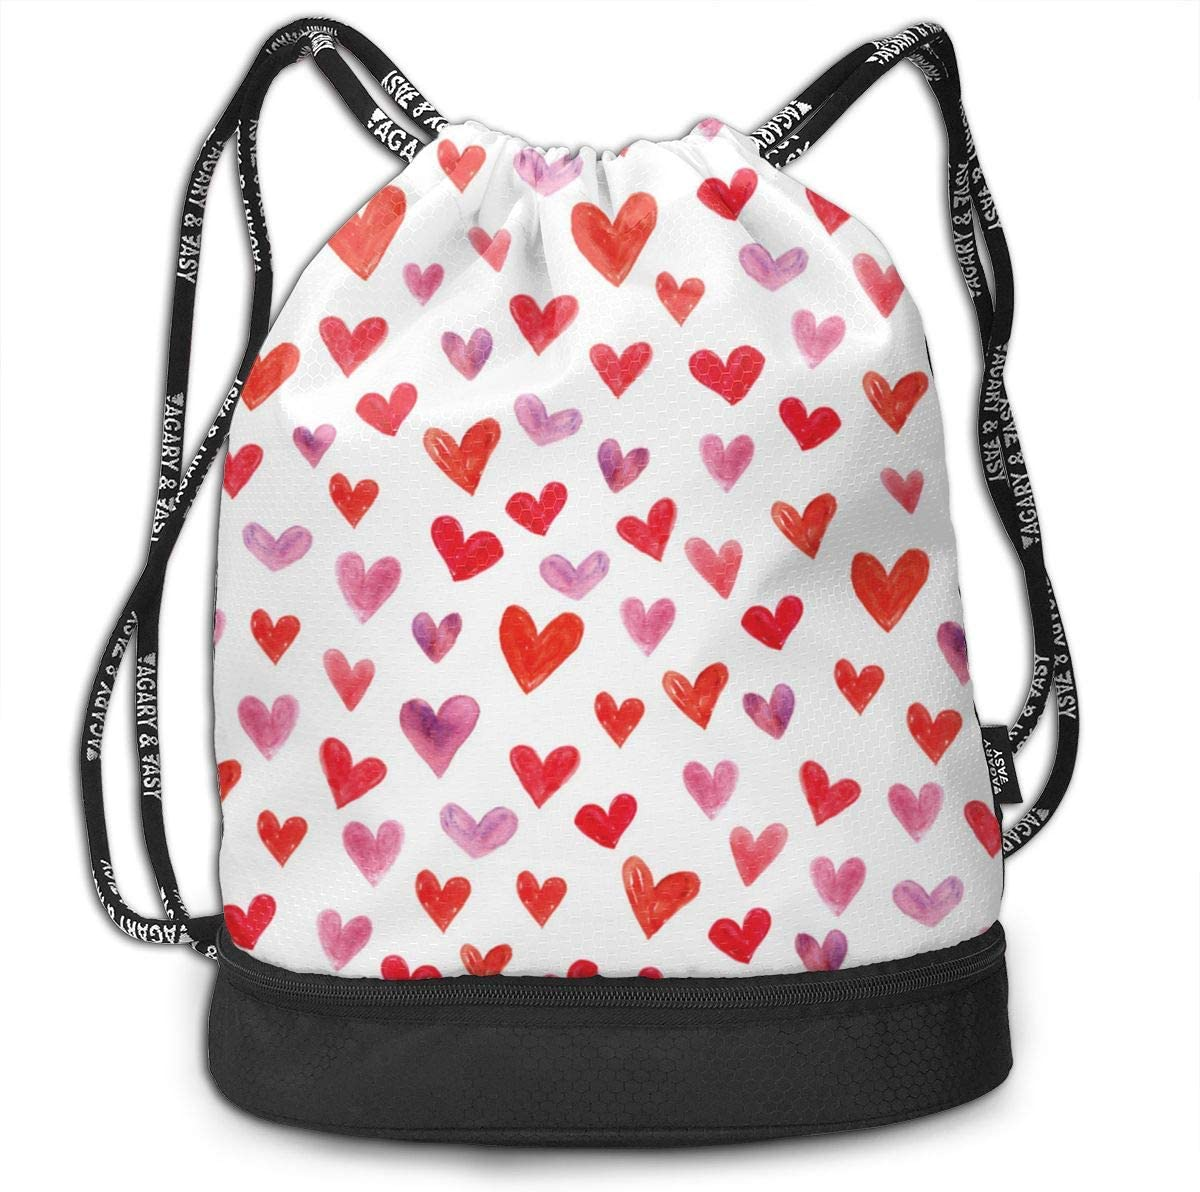 HUOPR5Q Red Hearts Drawstring Backpack Sport Gym Sack Shoulder Bulk Bag Dance Bag for School Travel